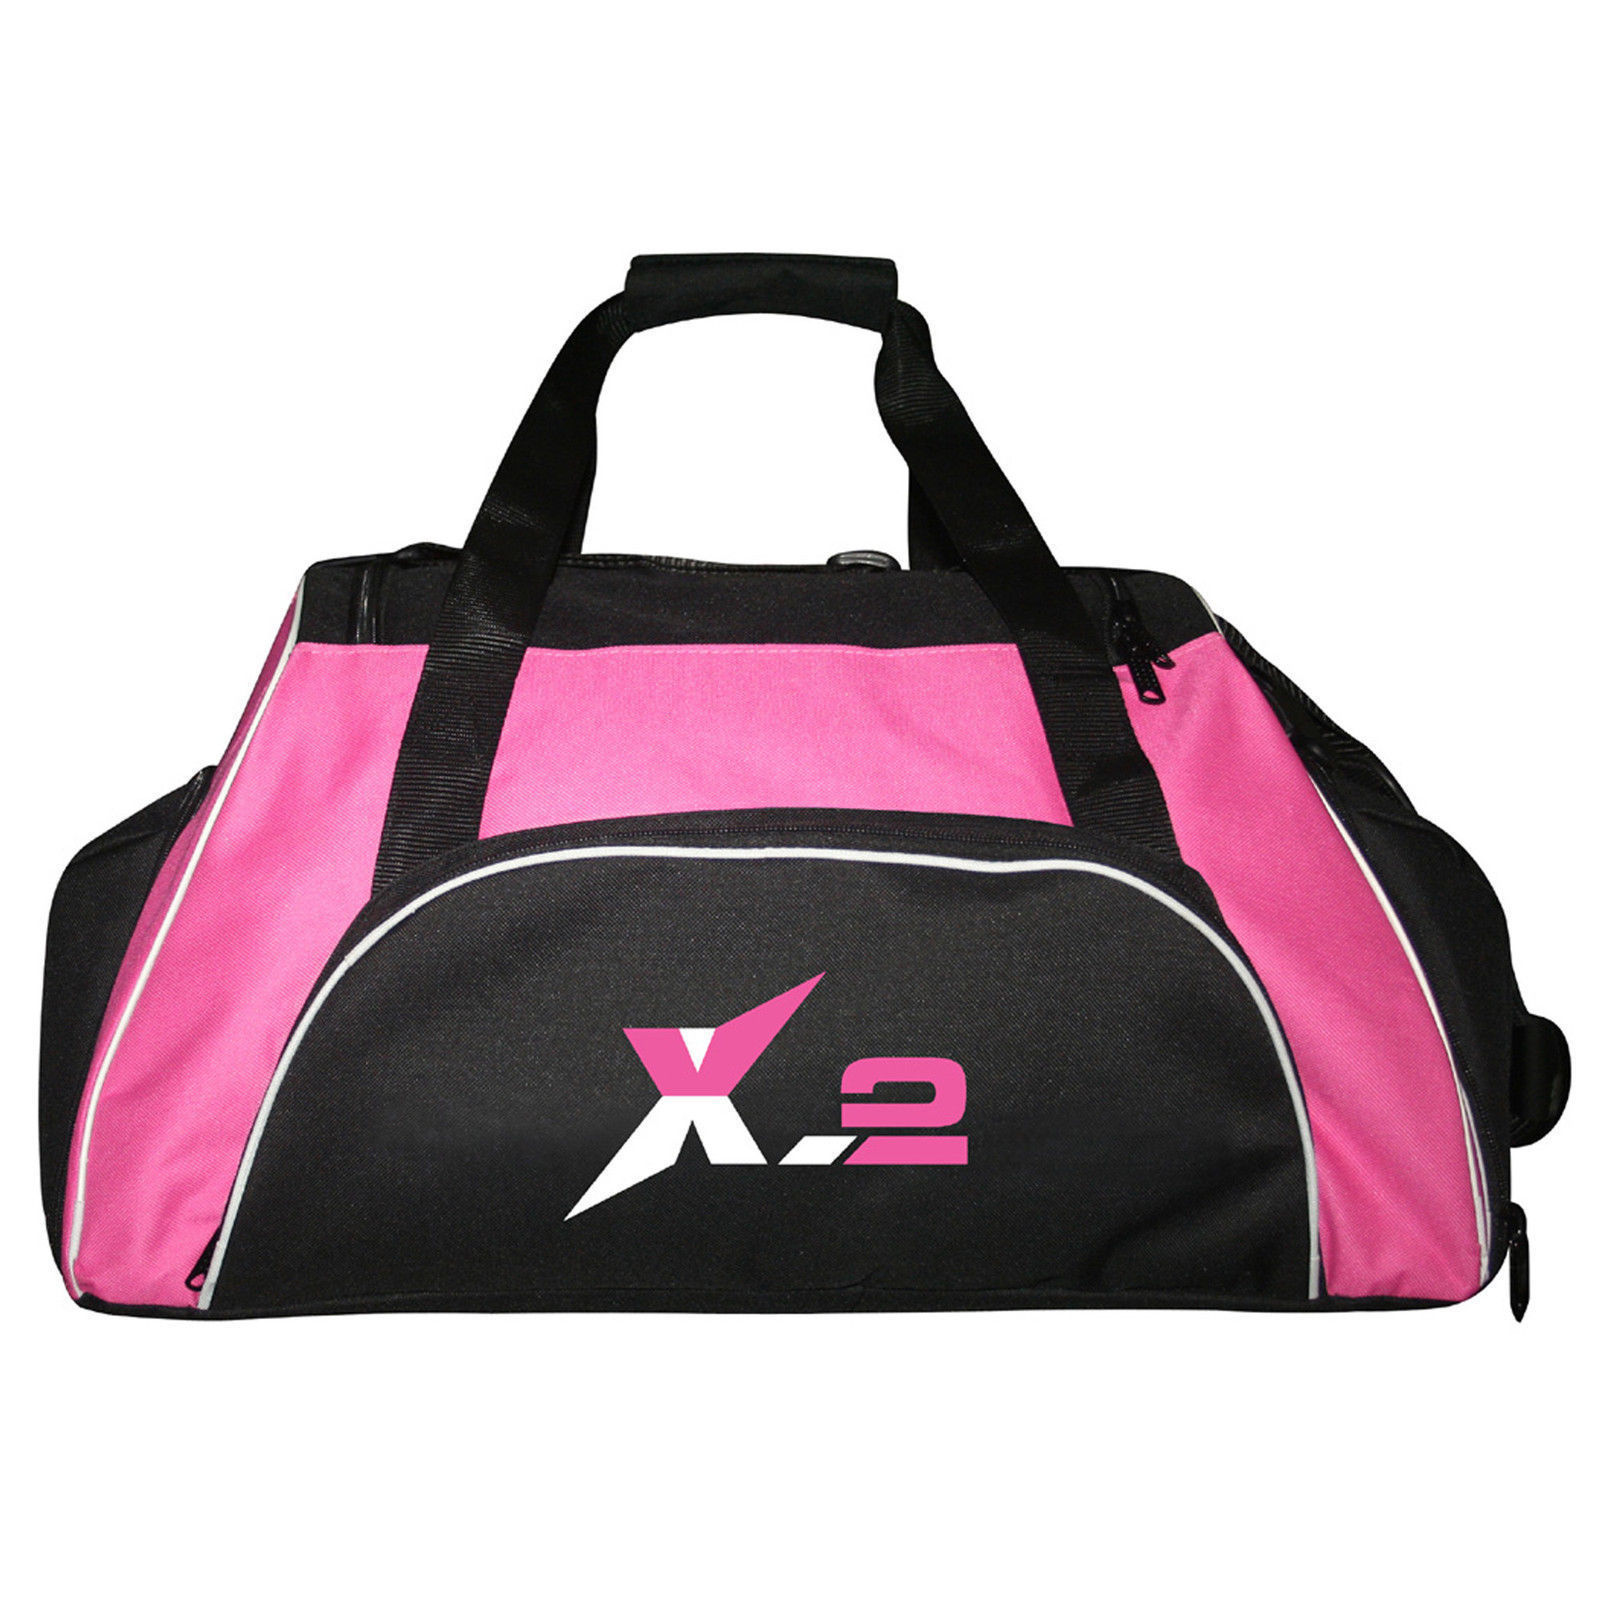 Duffle Bag | Gym Bags For Sports | Luggage Bags For Travel | Sports Bag